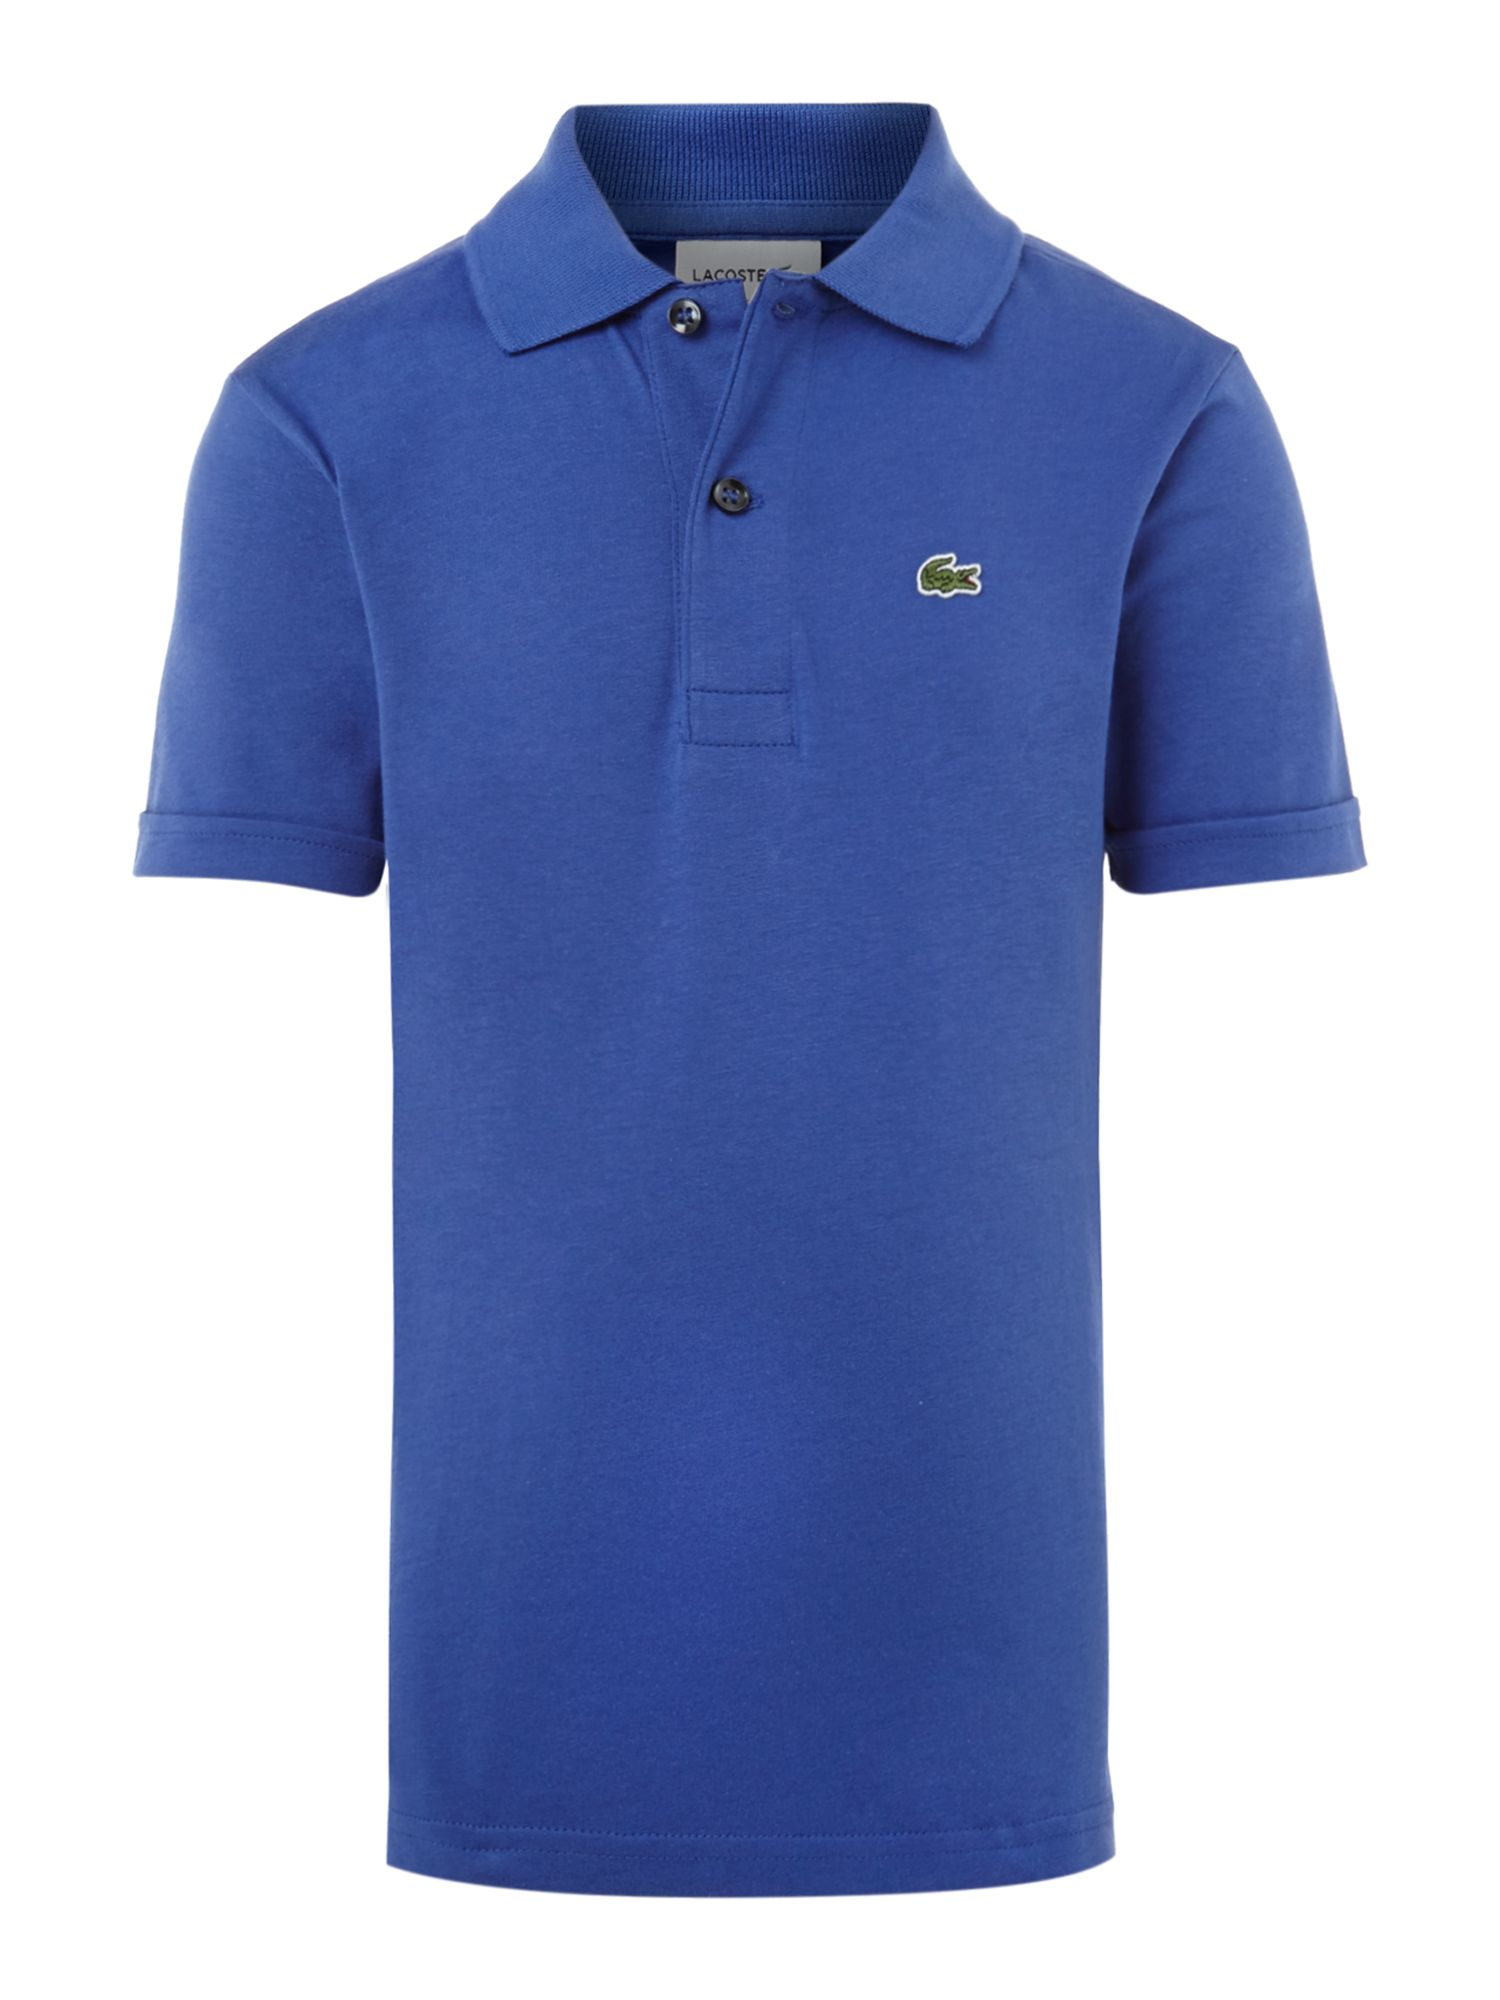 Boys plain jersey polo shirt